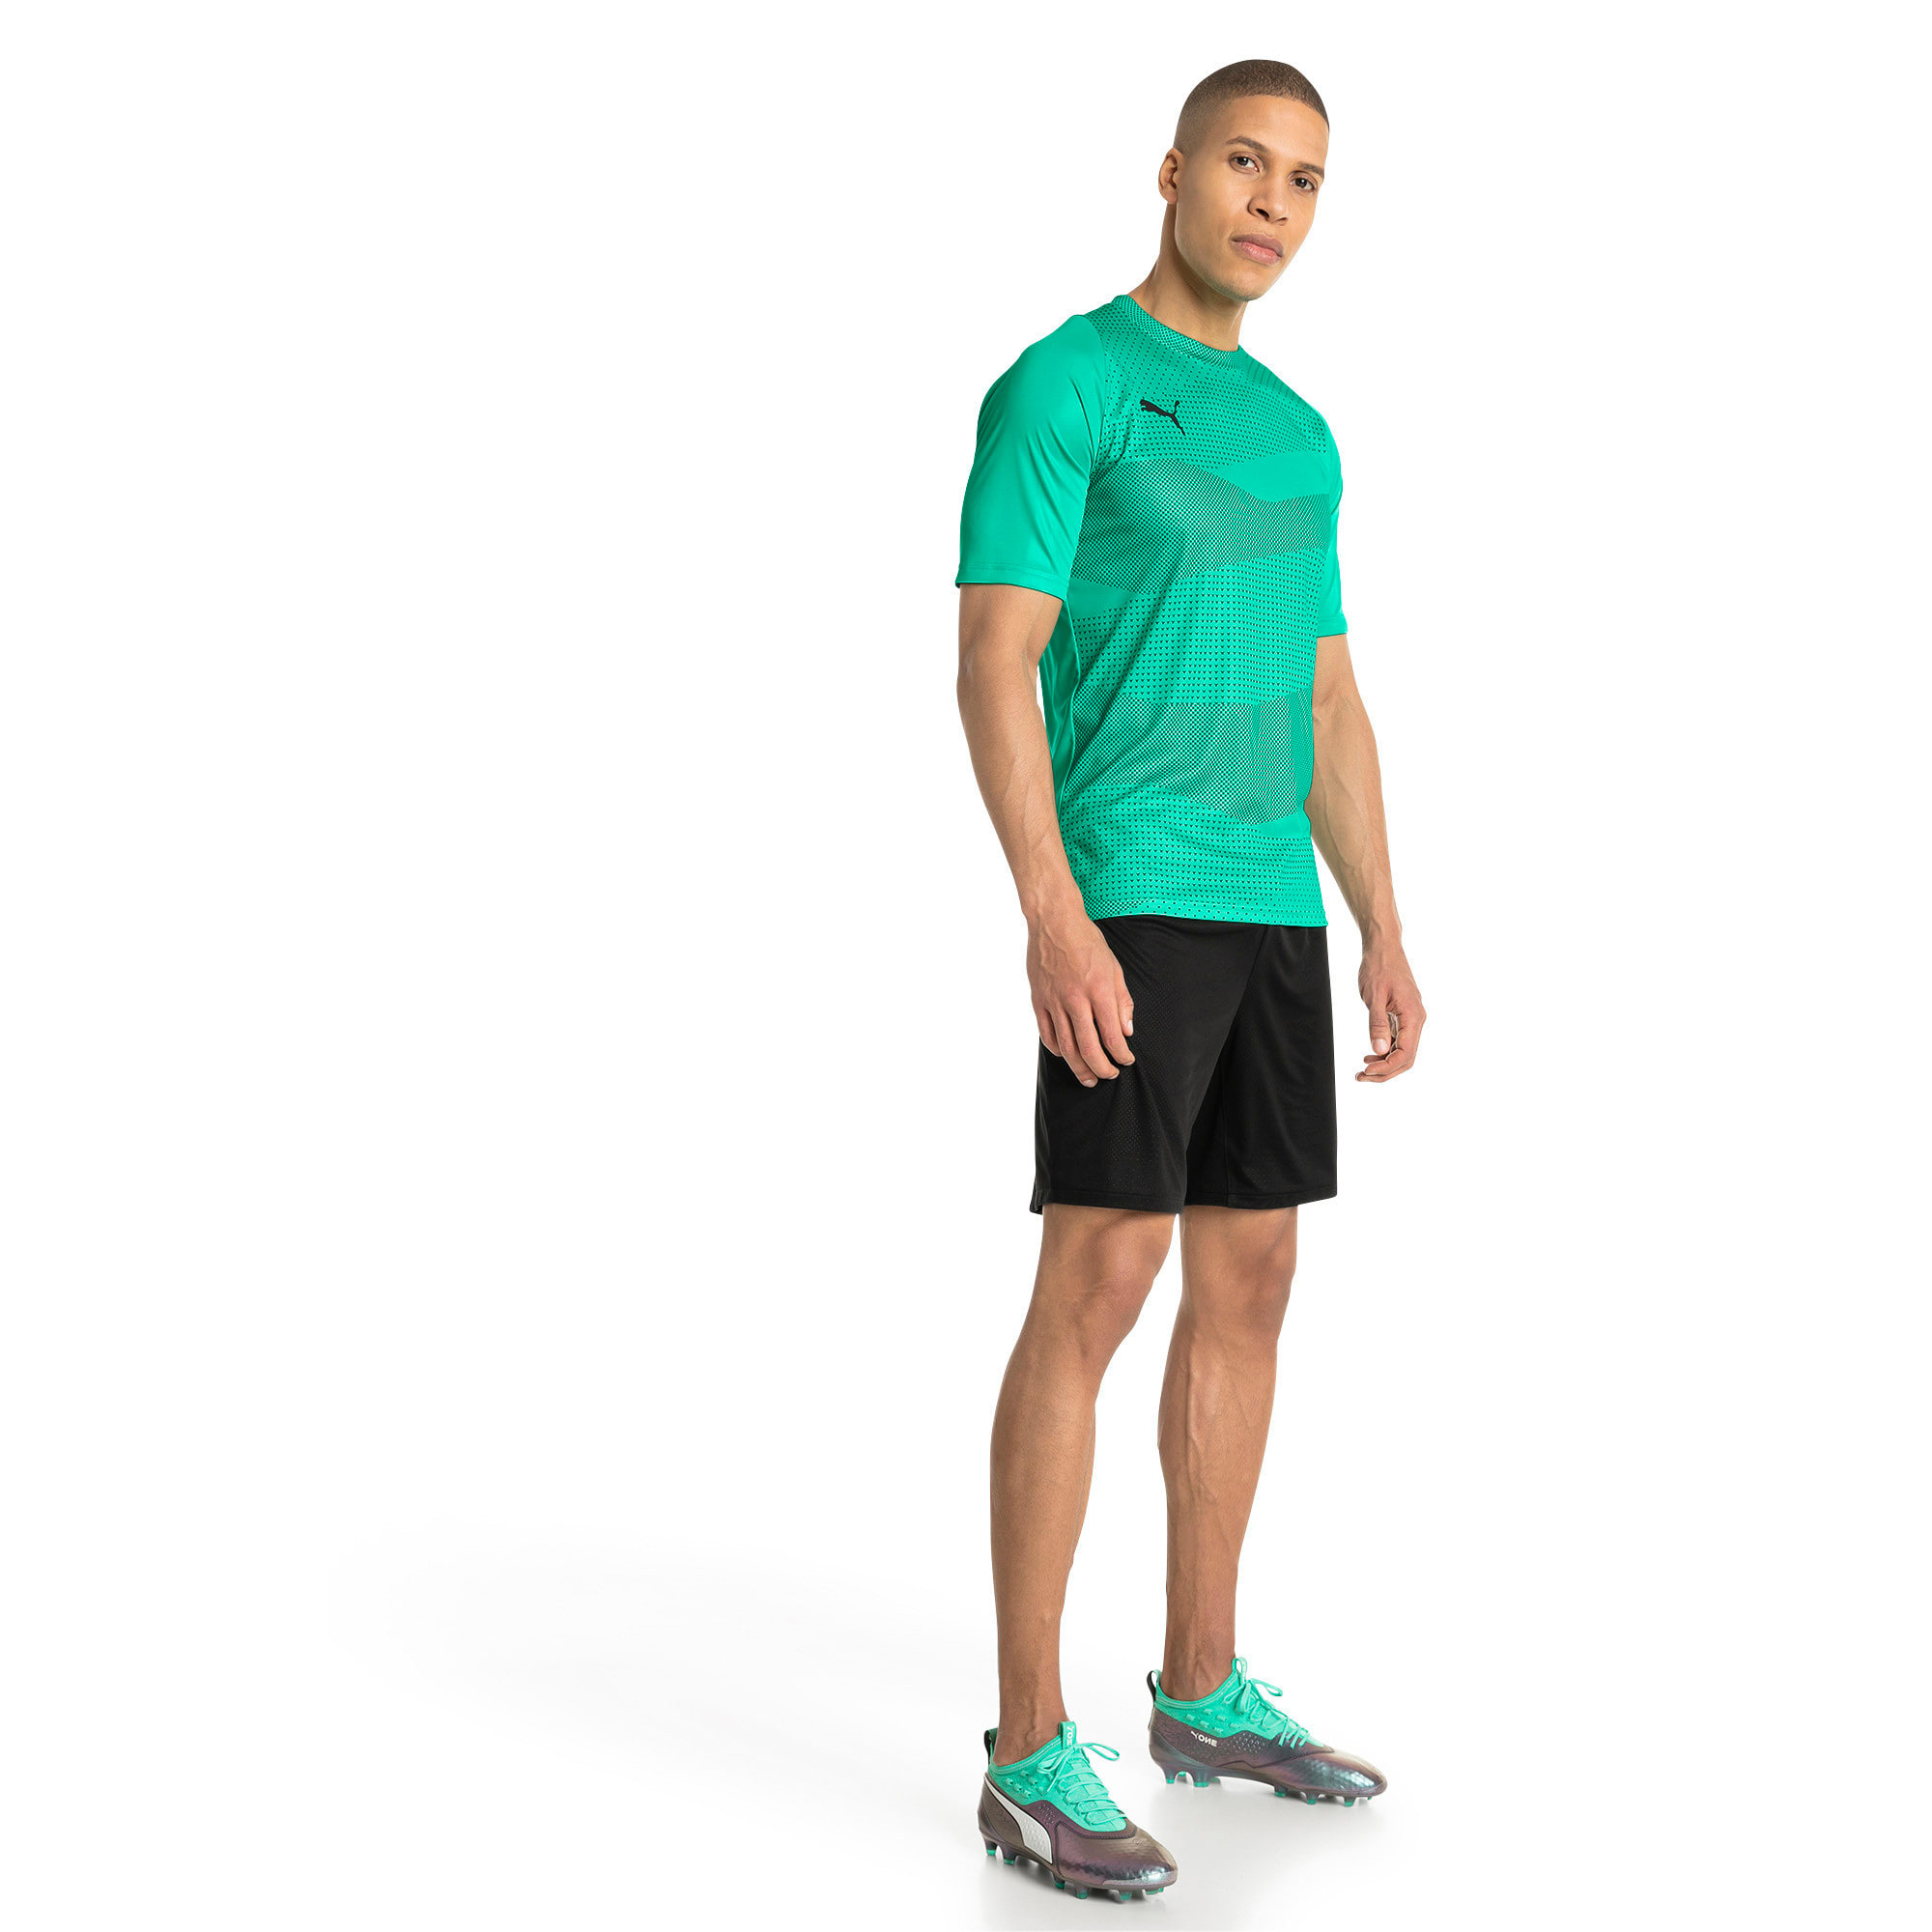 Thumbnail 5 of ftblNXT Graphic Core Men's Training Top, Biscay Green-Iron Gate, medium